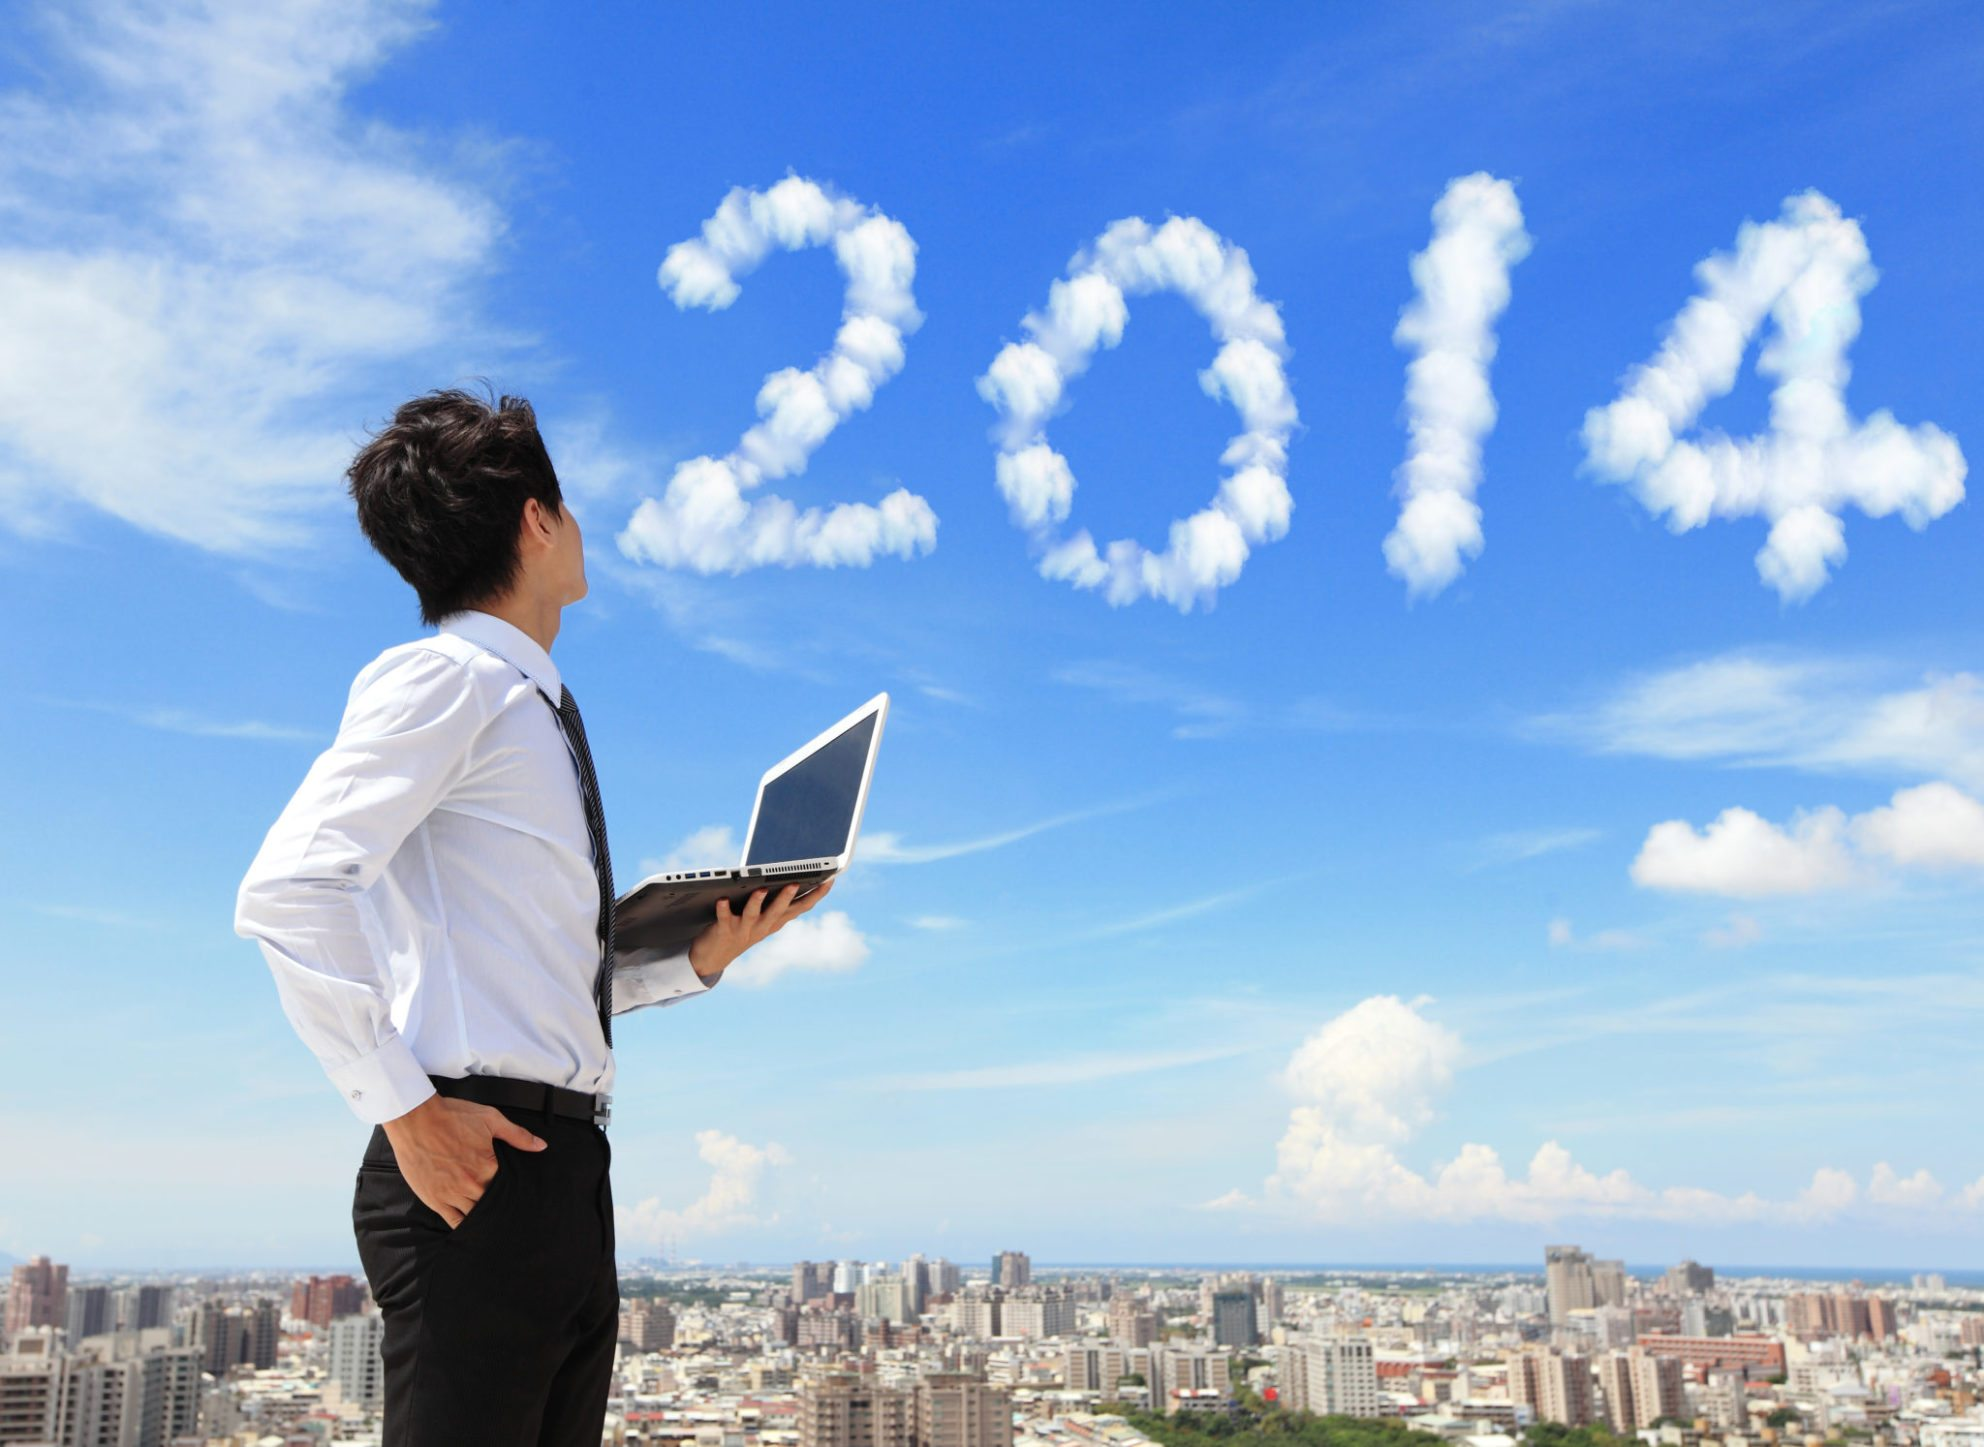 Look for new companies to keep shaking things up in 2014 with more partnerships, conversations and interactions